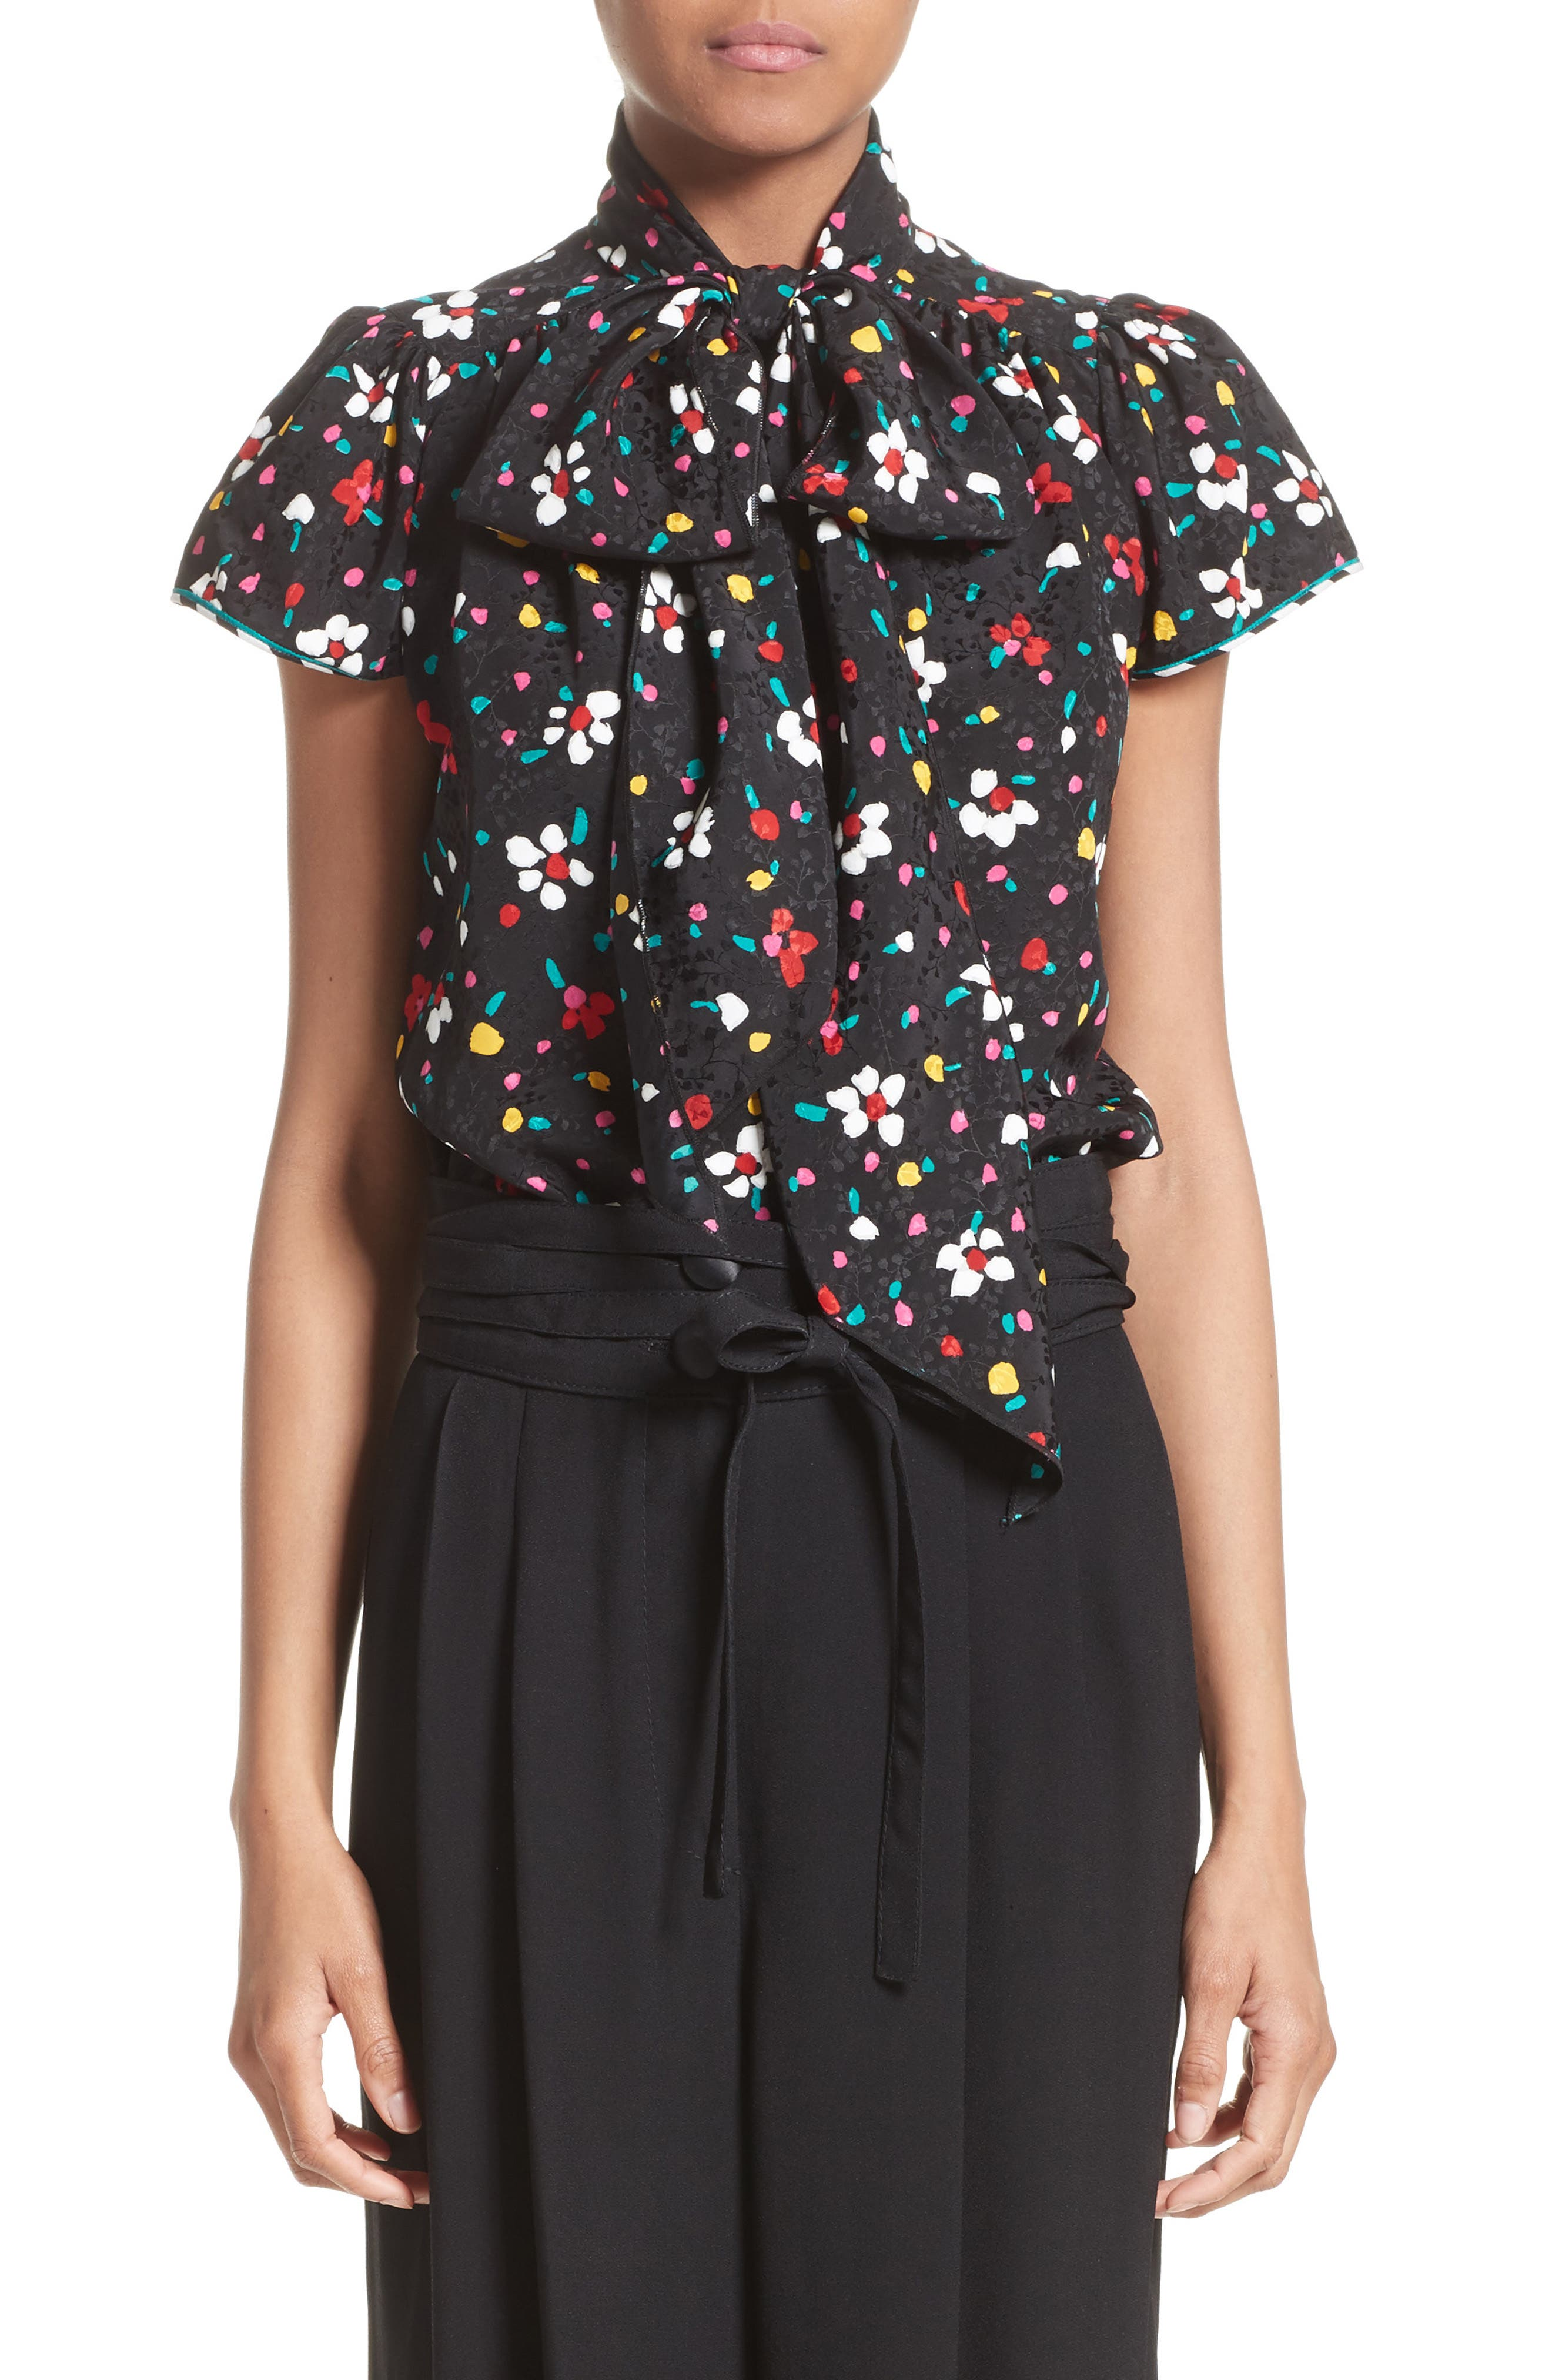 Alternate Image 1 Selected - MARC JACOBS Floral Silk Jacquard Blouse